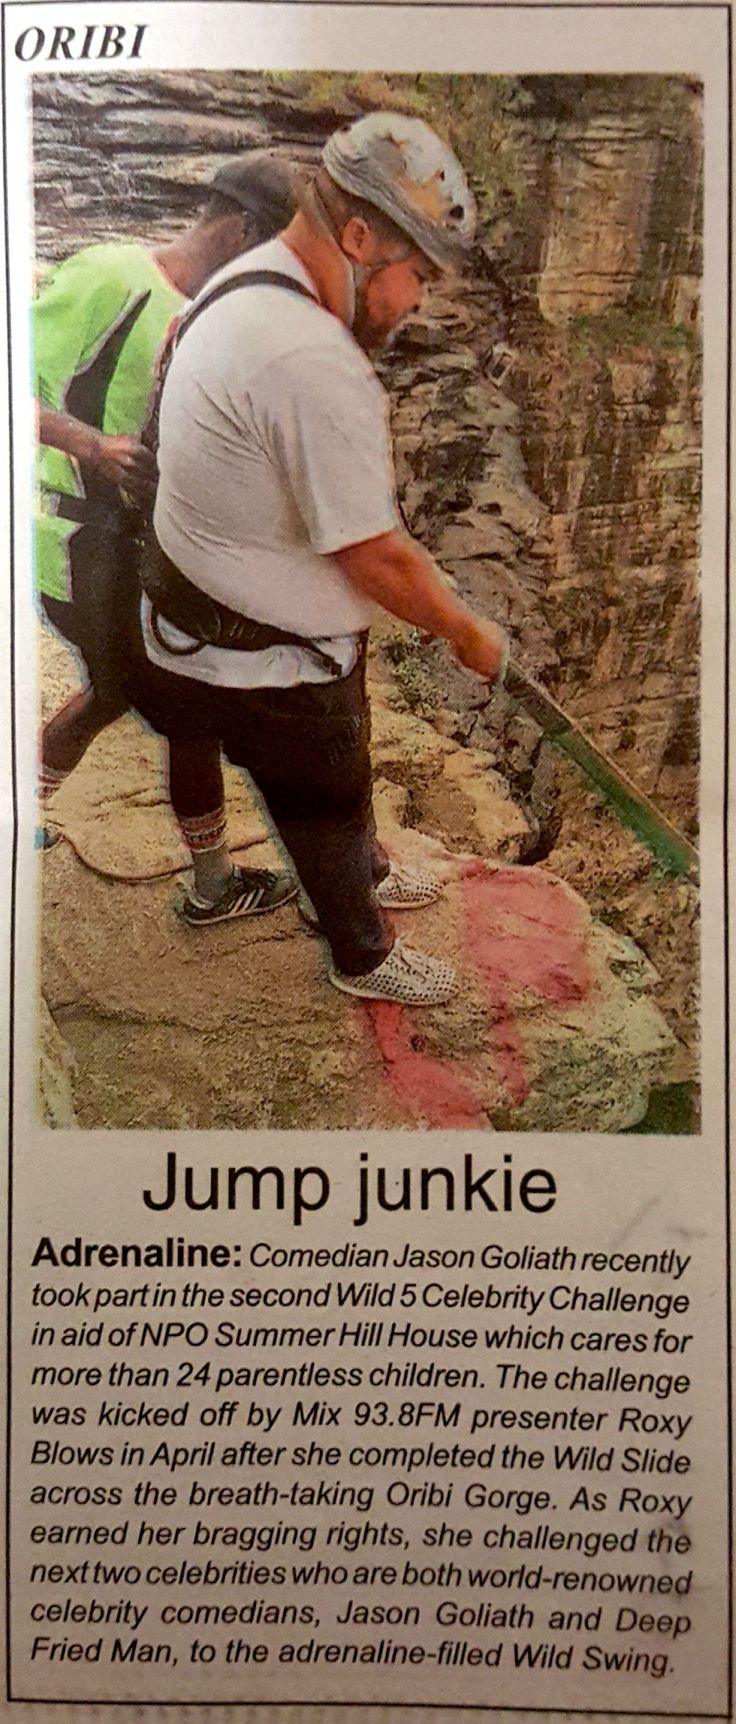 Wild 5 Adventures, Oribi Gorge would like to thank the South Coast Herald for the awesome feature on the #Wild5CelebChallenge that Jason Goliath took part in, all in aid of Summer Hill House